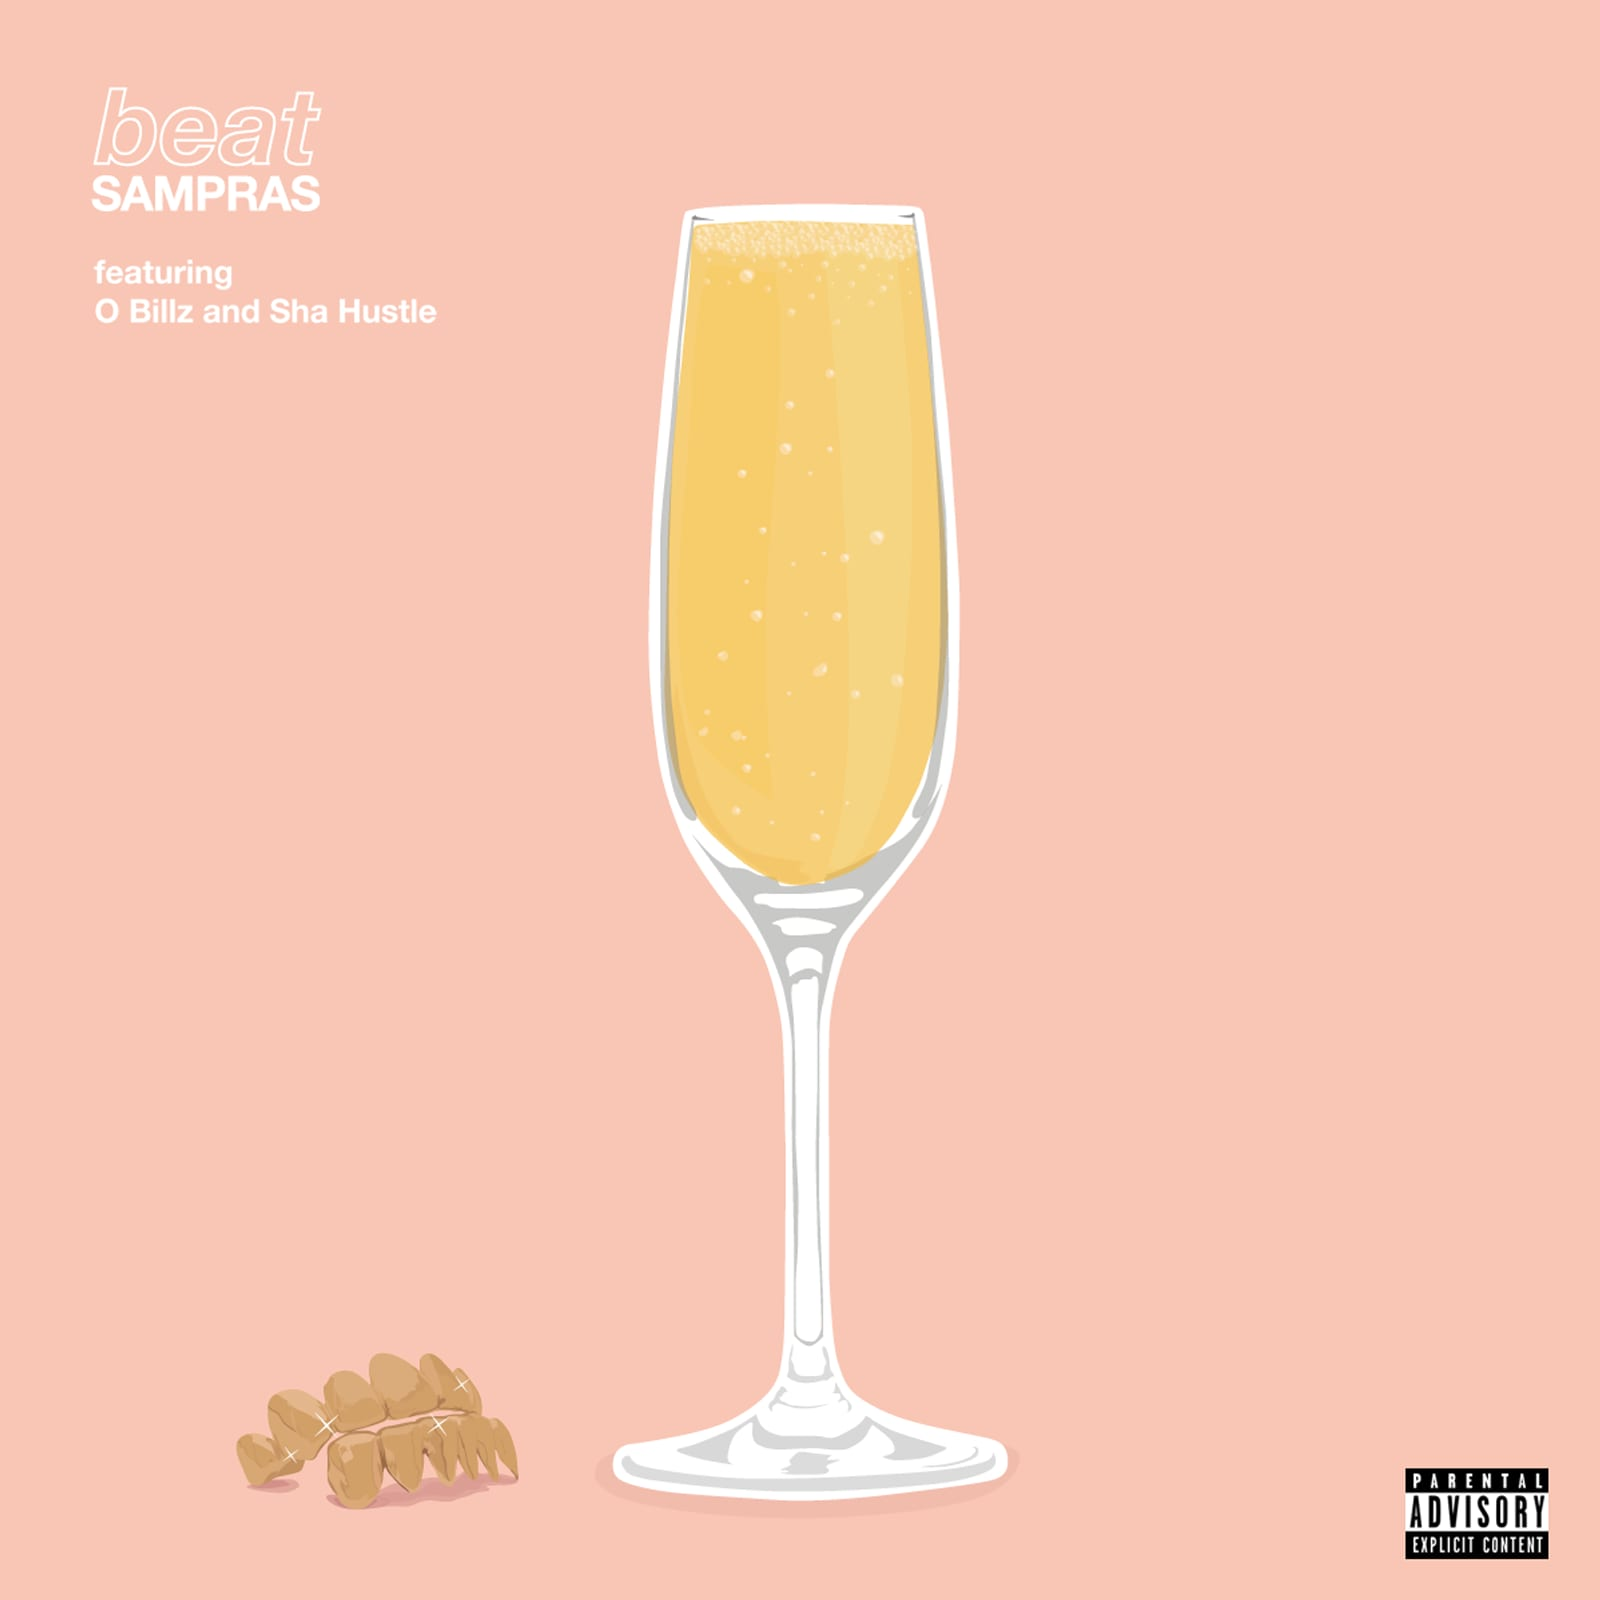 Beat Sampras Hood Mimosa Album Art